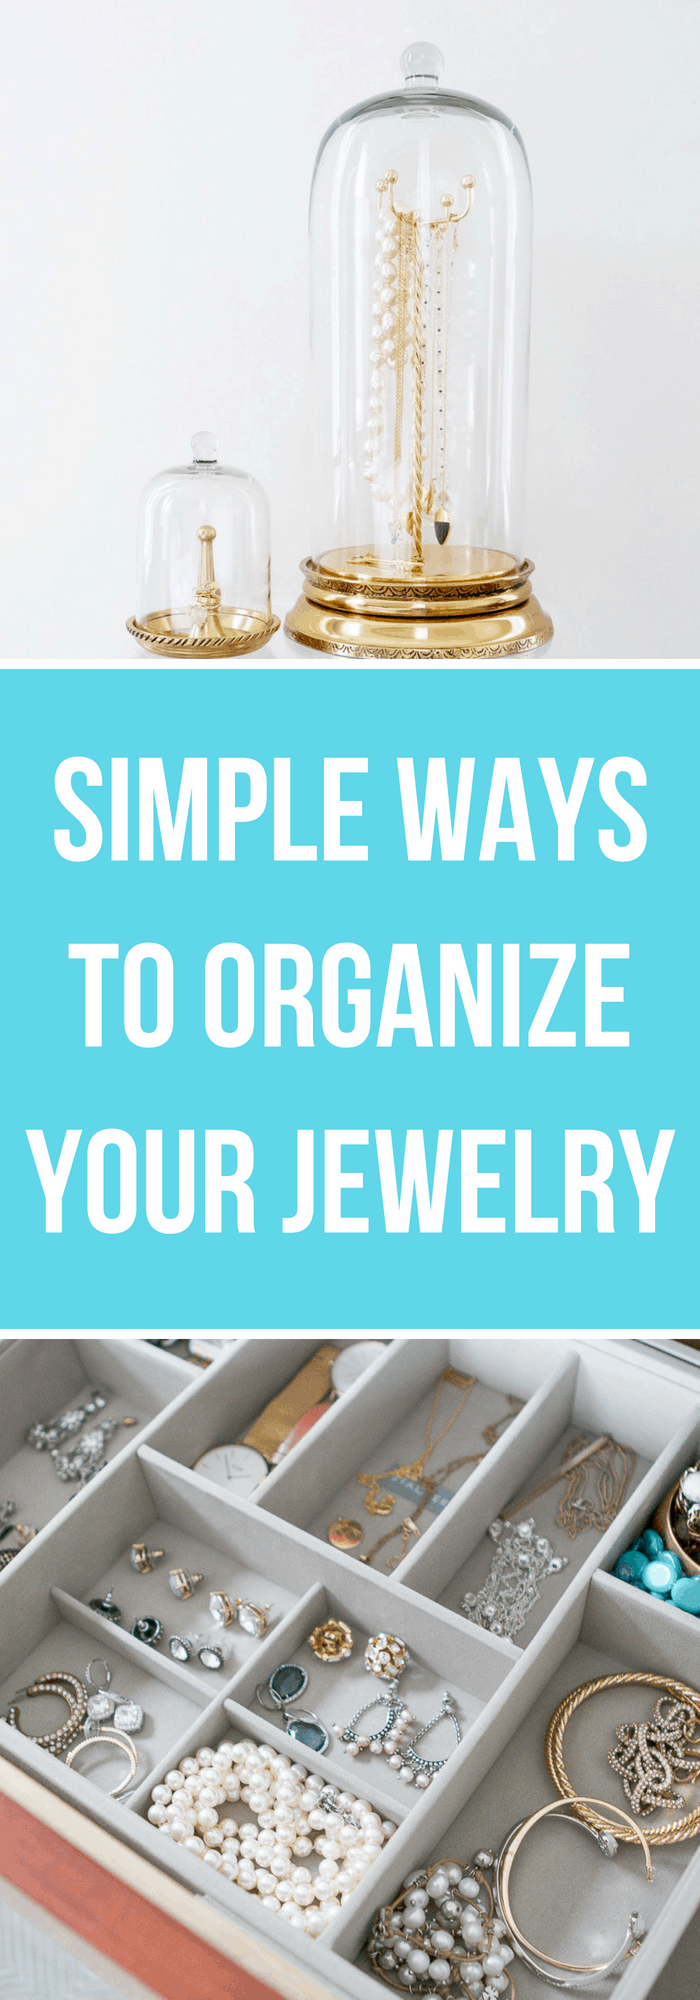 Organization--Simple Ways to Organize Your Jewelry--The Organized Mom